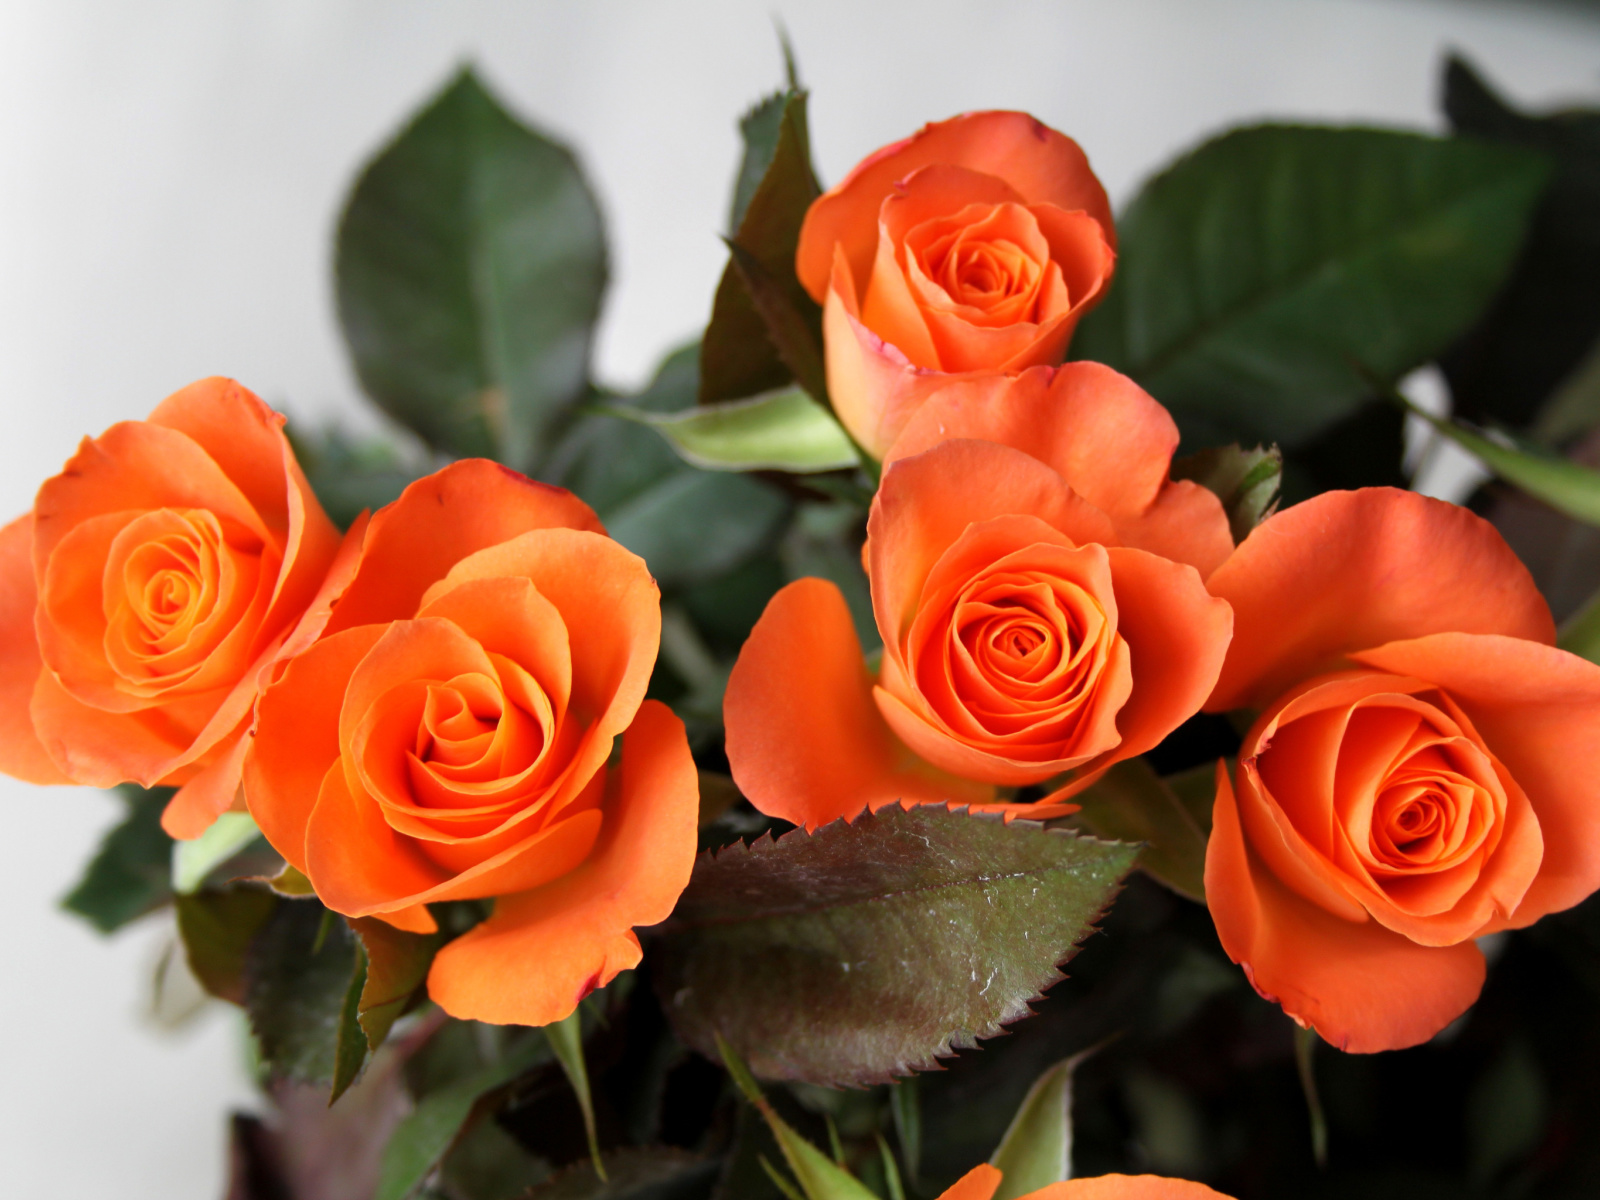 Orange roses screenshot #1 1600x1200